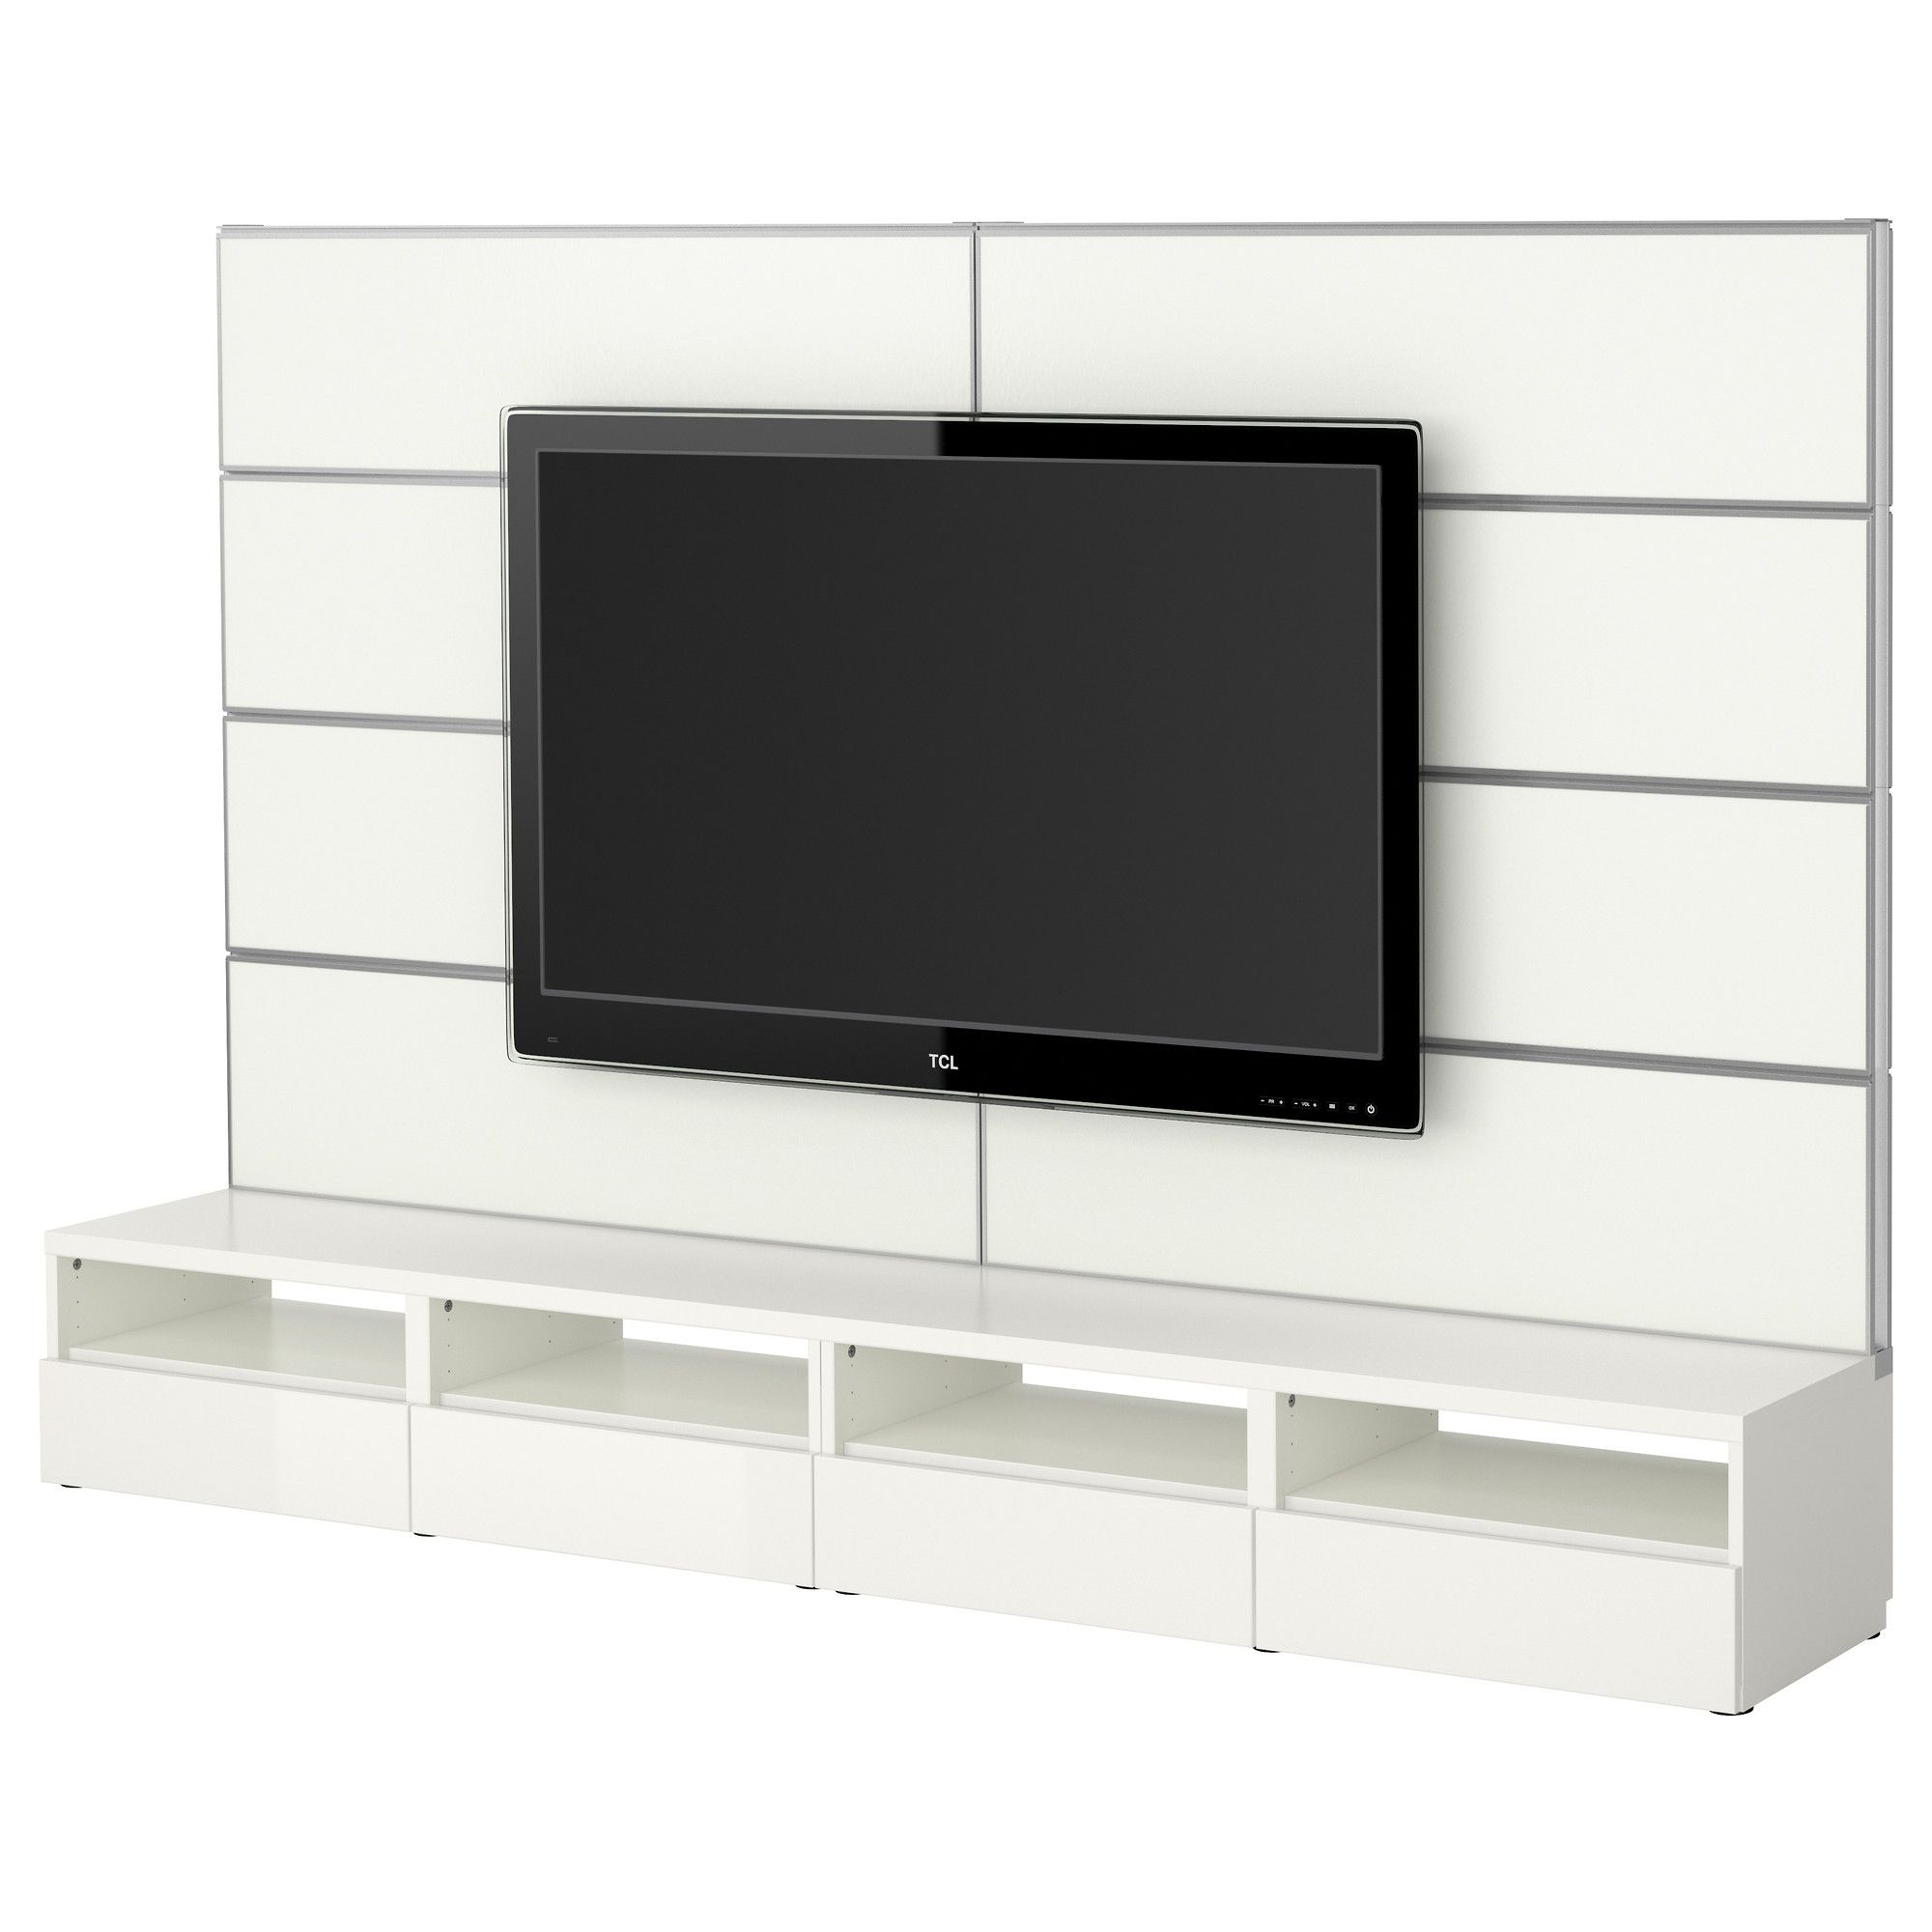 Best framst tv storage combination white ikea apt for Ikea meuble mural besta